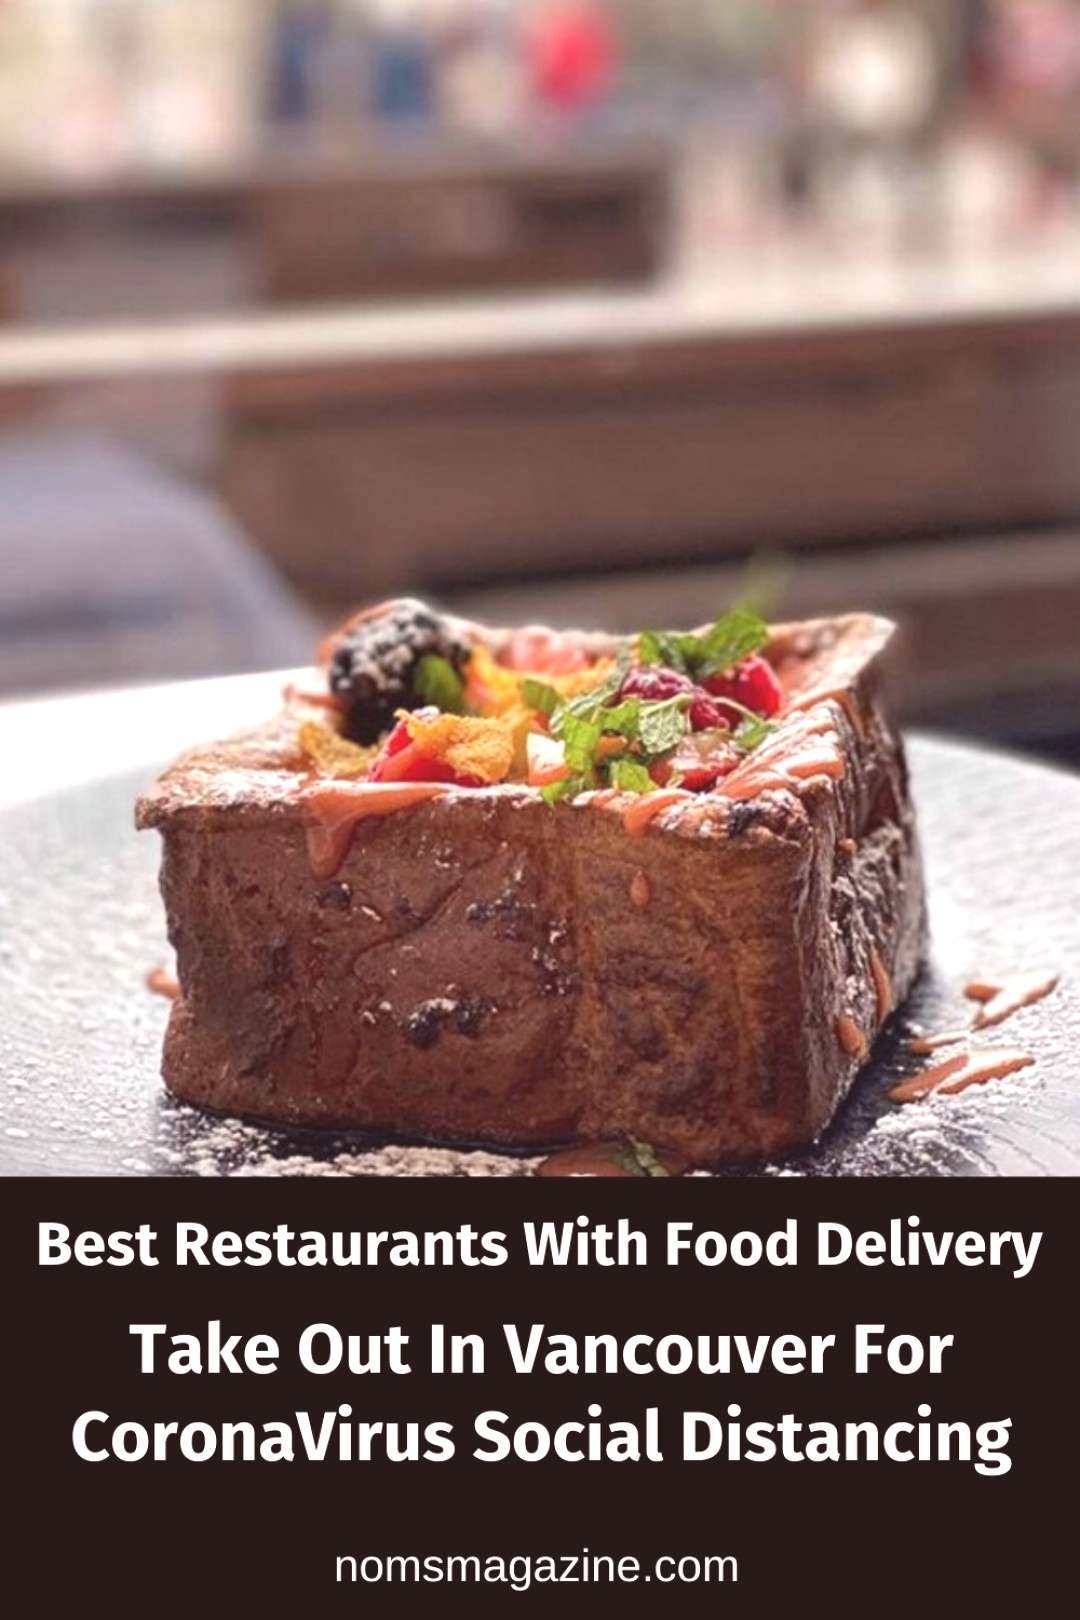 Best Restaurants With Food Delivery & Take Out In Vancouver For CoronaVirus Social Distancing  Wate